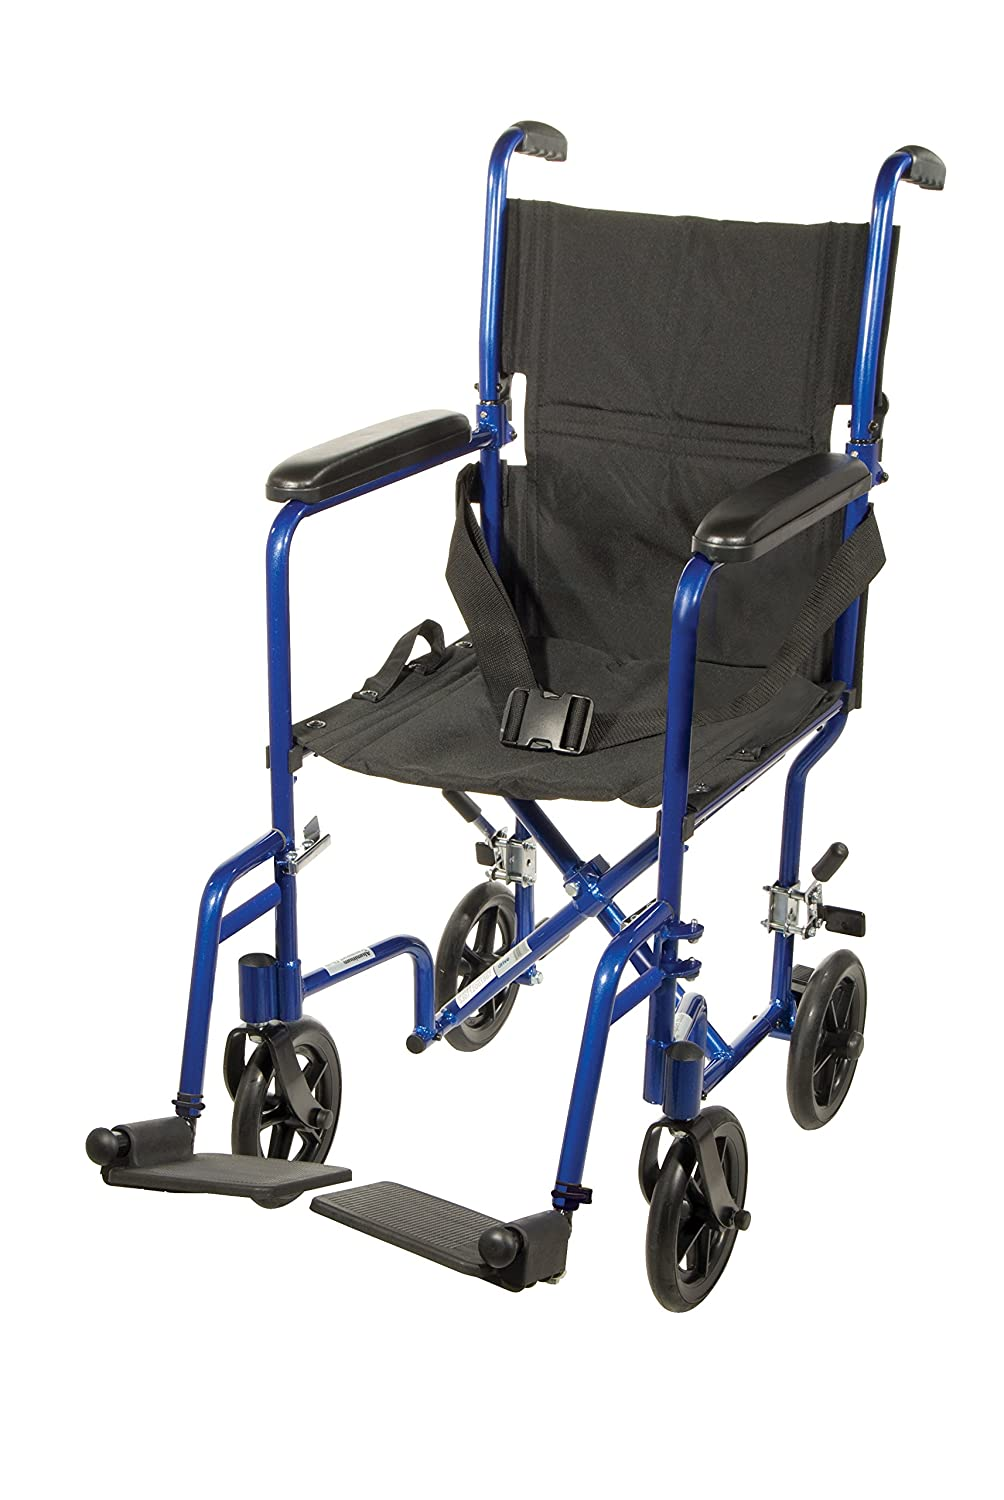 Transport chair amazon - Amazon Com Drive Medical Deluxe Lightweight Aluminum Transport Wheelchair Blue 17 Health Personal Care